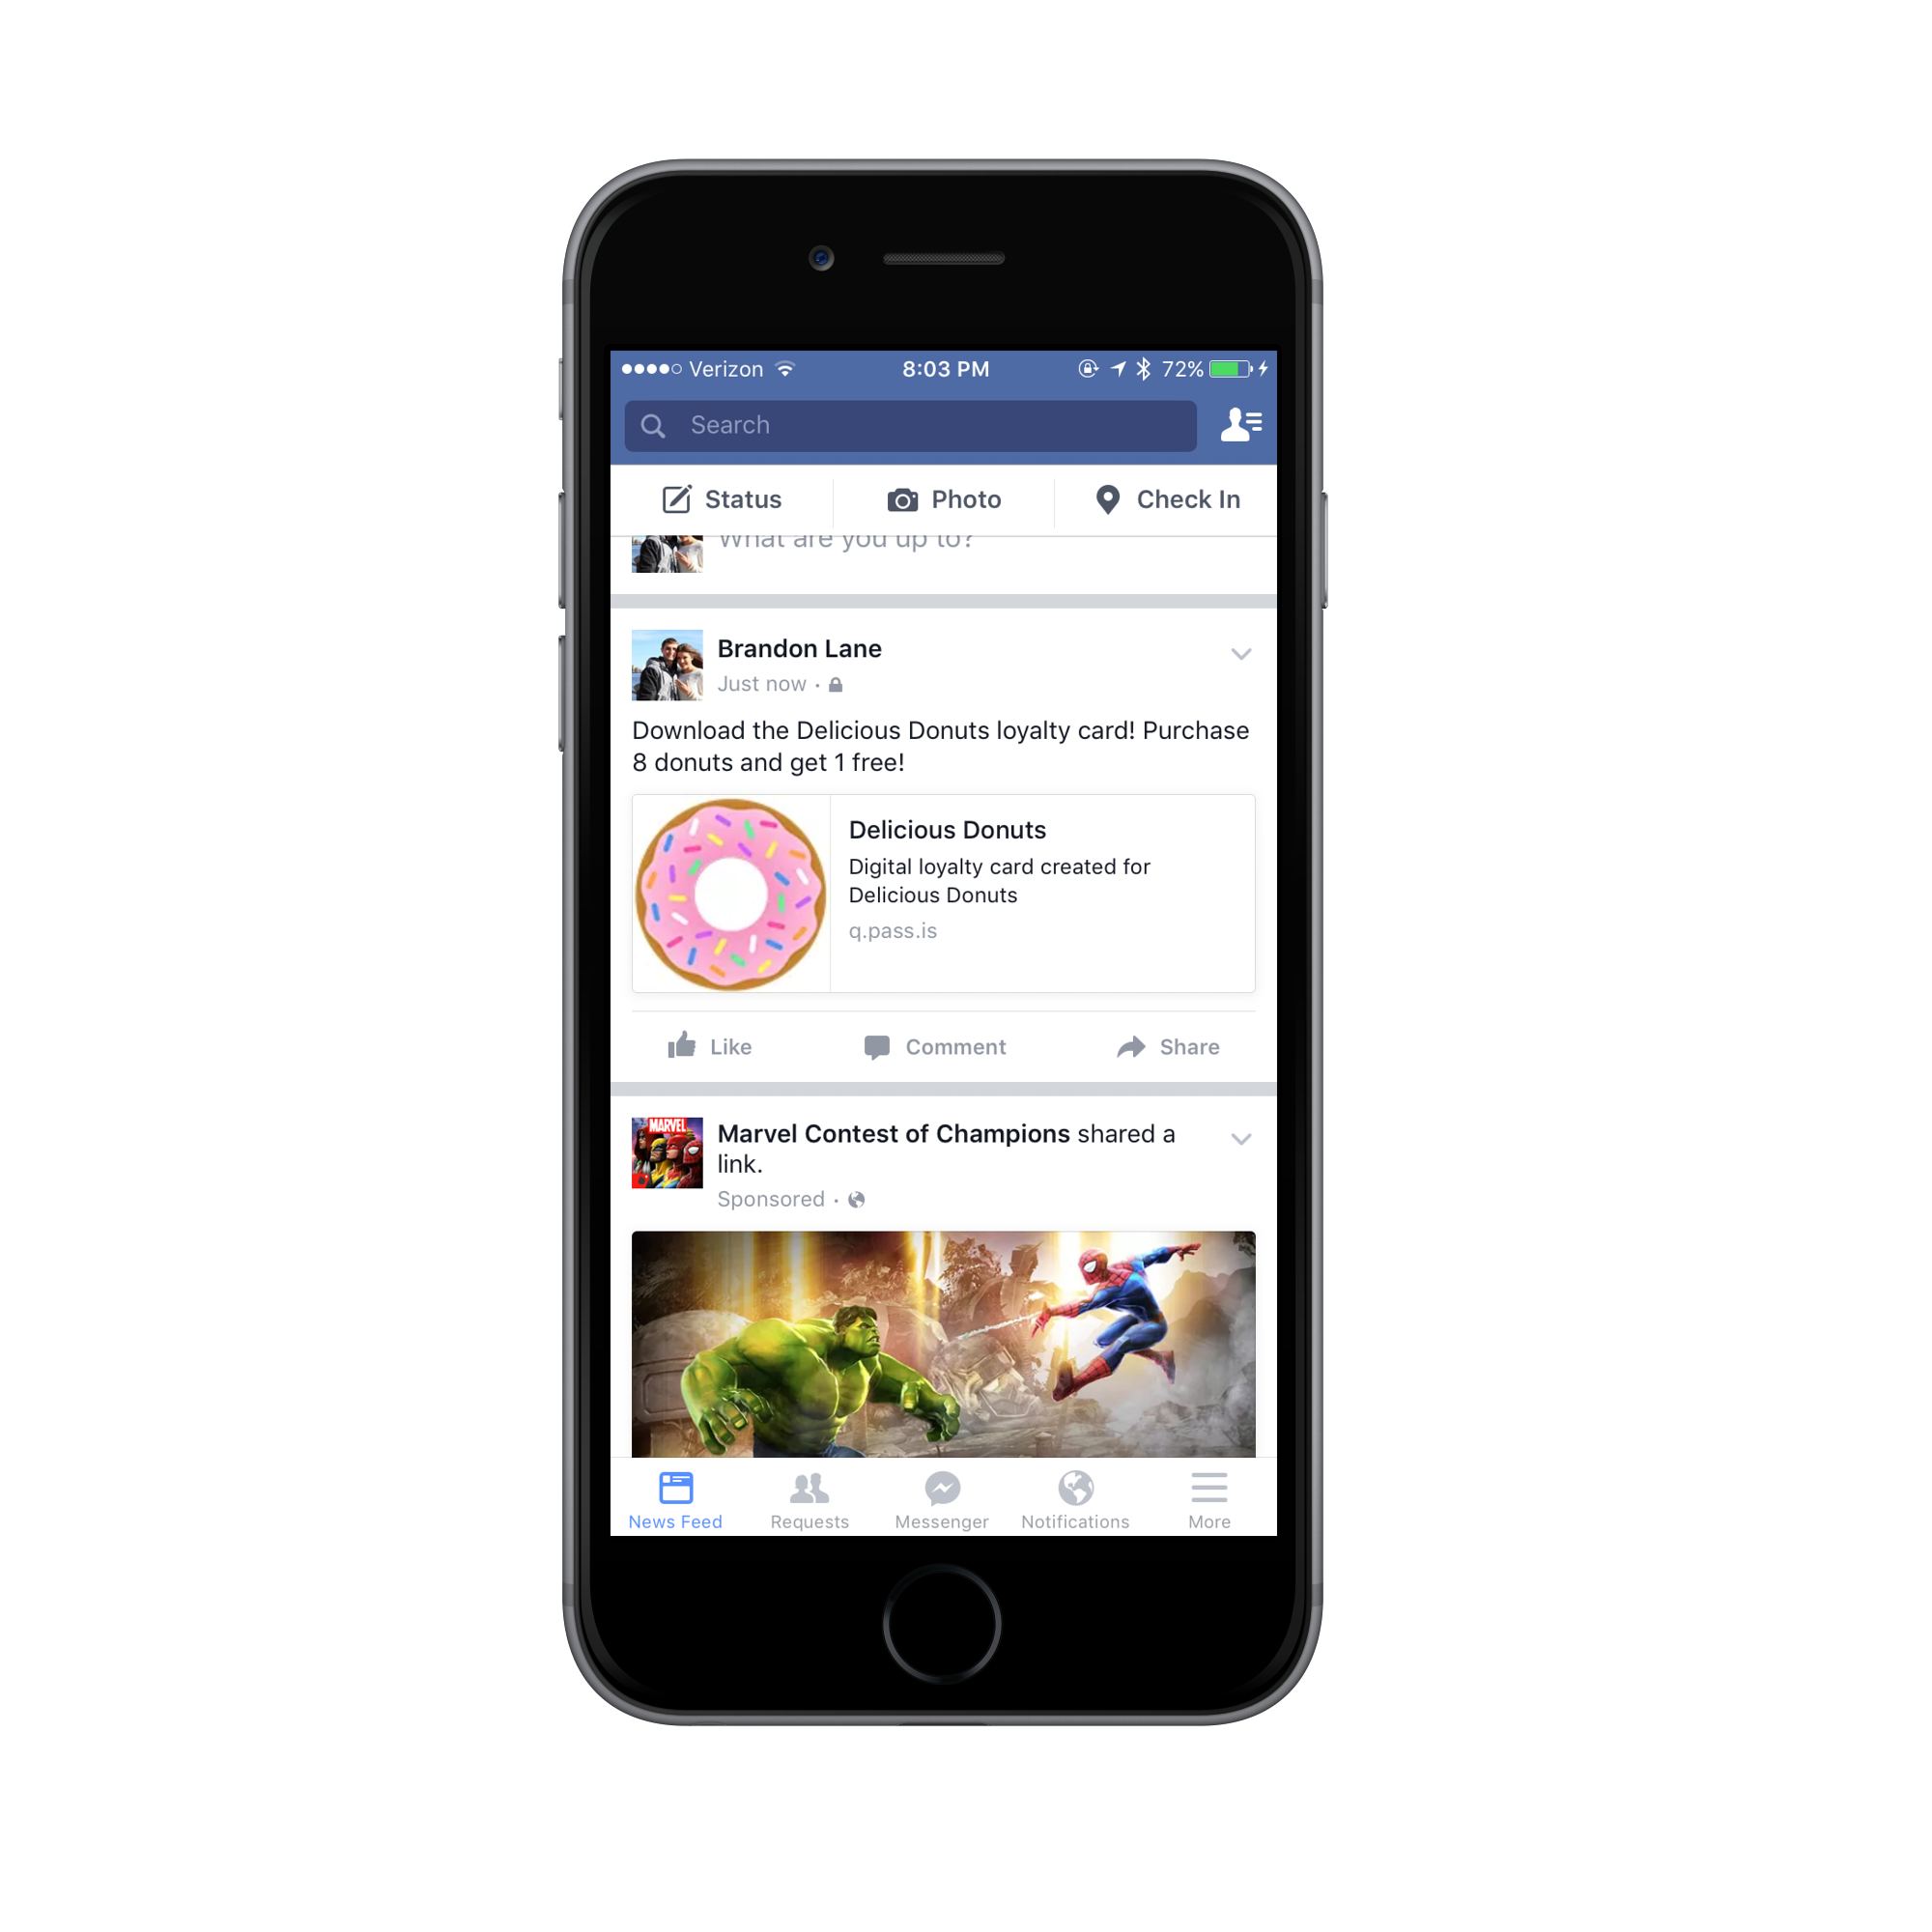 This is an example of how a social media post could look. Once a user clicks on the link it would bring them to the landing page that allows them to add the mobile wallet content.